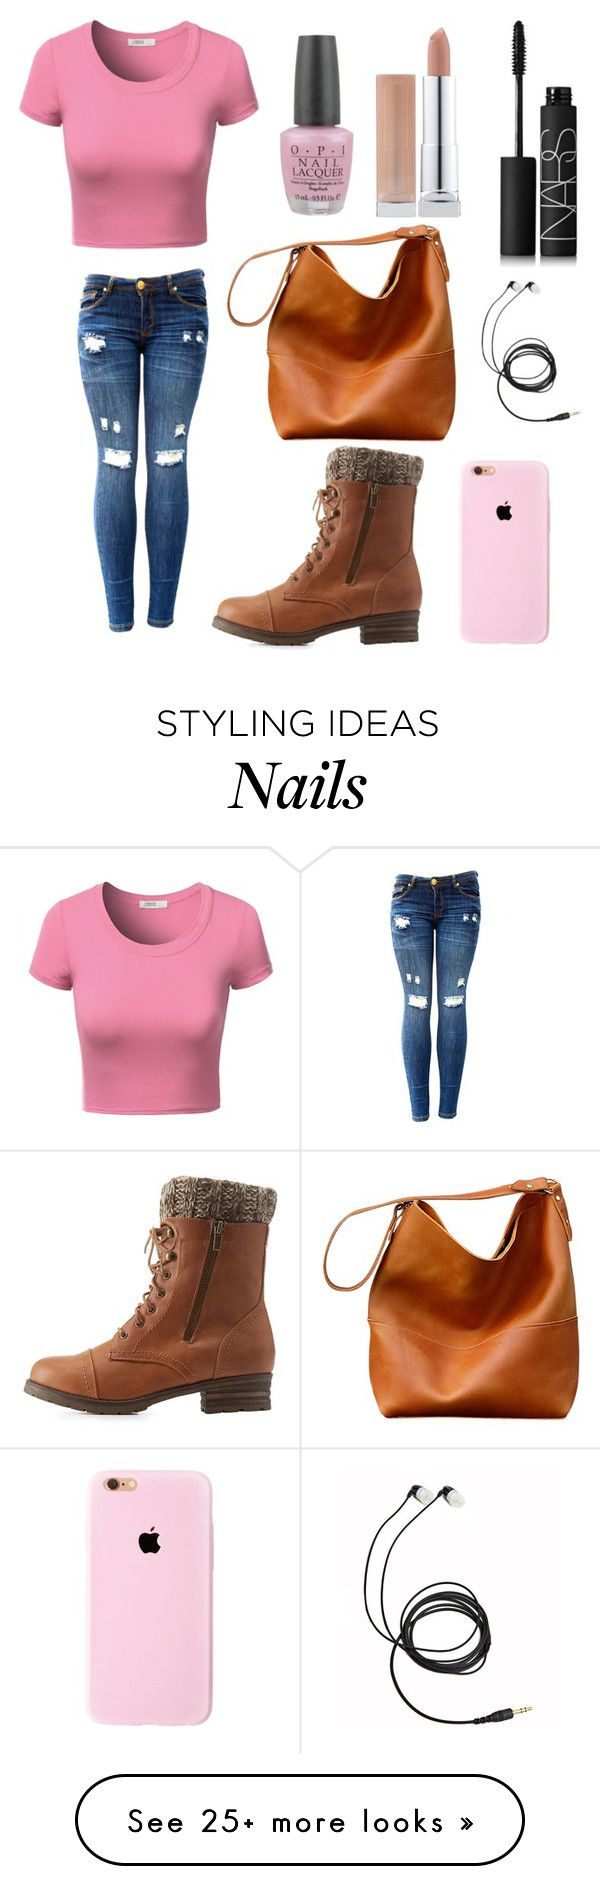 """""""Pink Polish"""" by fashionova1 on Polyvore featuring J.TOMSON, Charlotte Russe, NARS Cosmetics and OPI"""